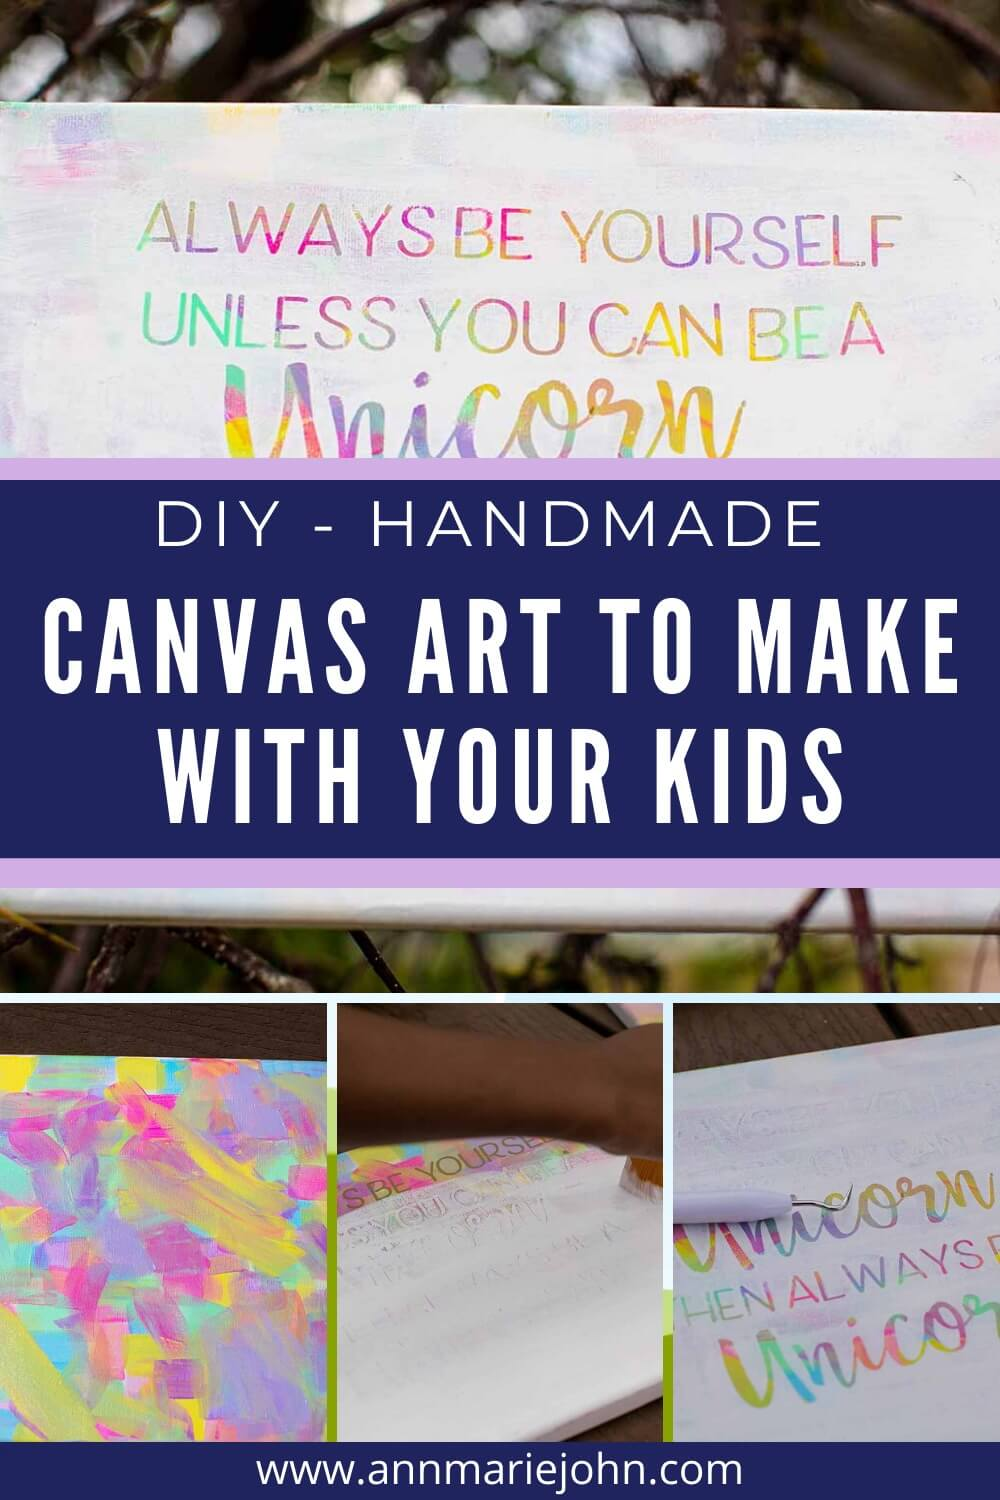 DIY Handmade Canvas Art to Make With Your Kids